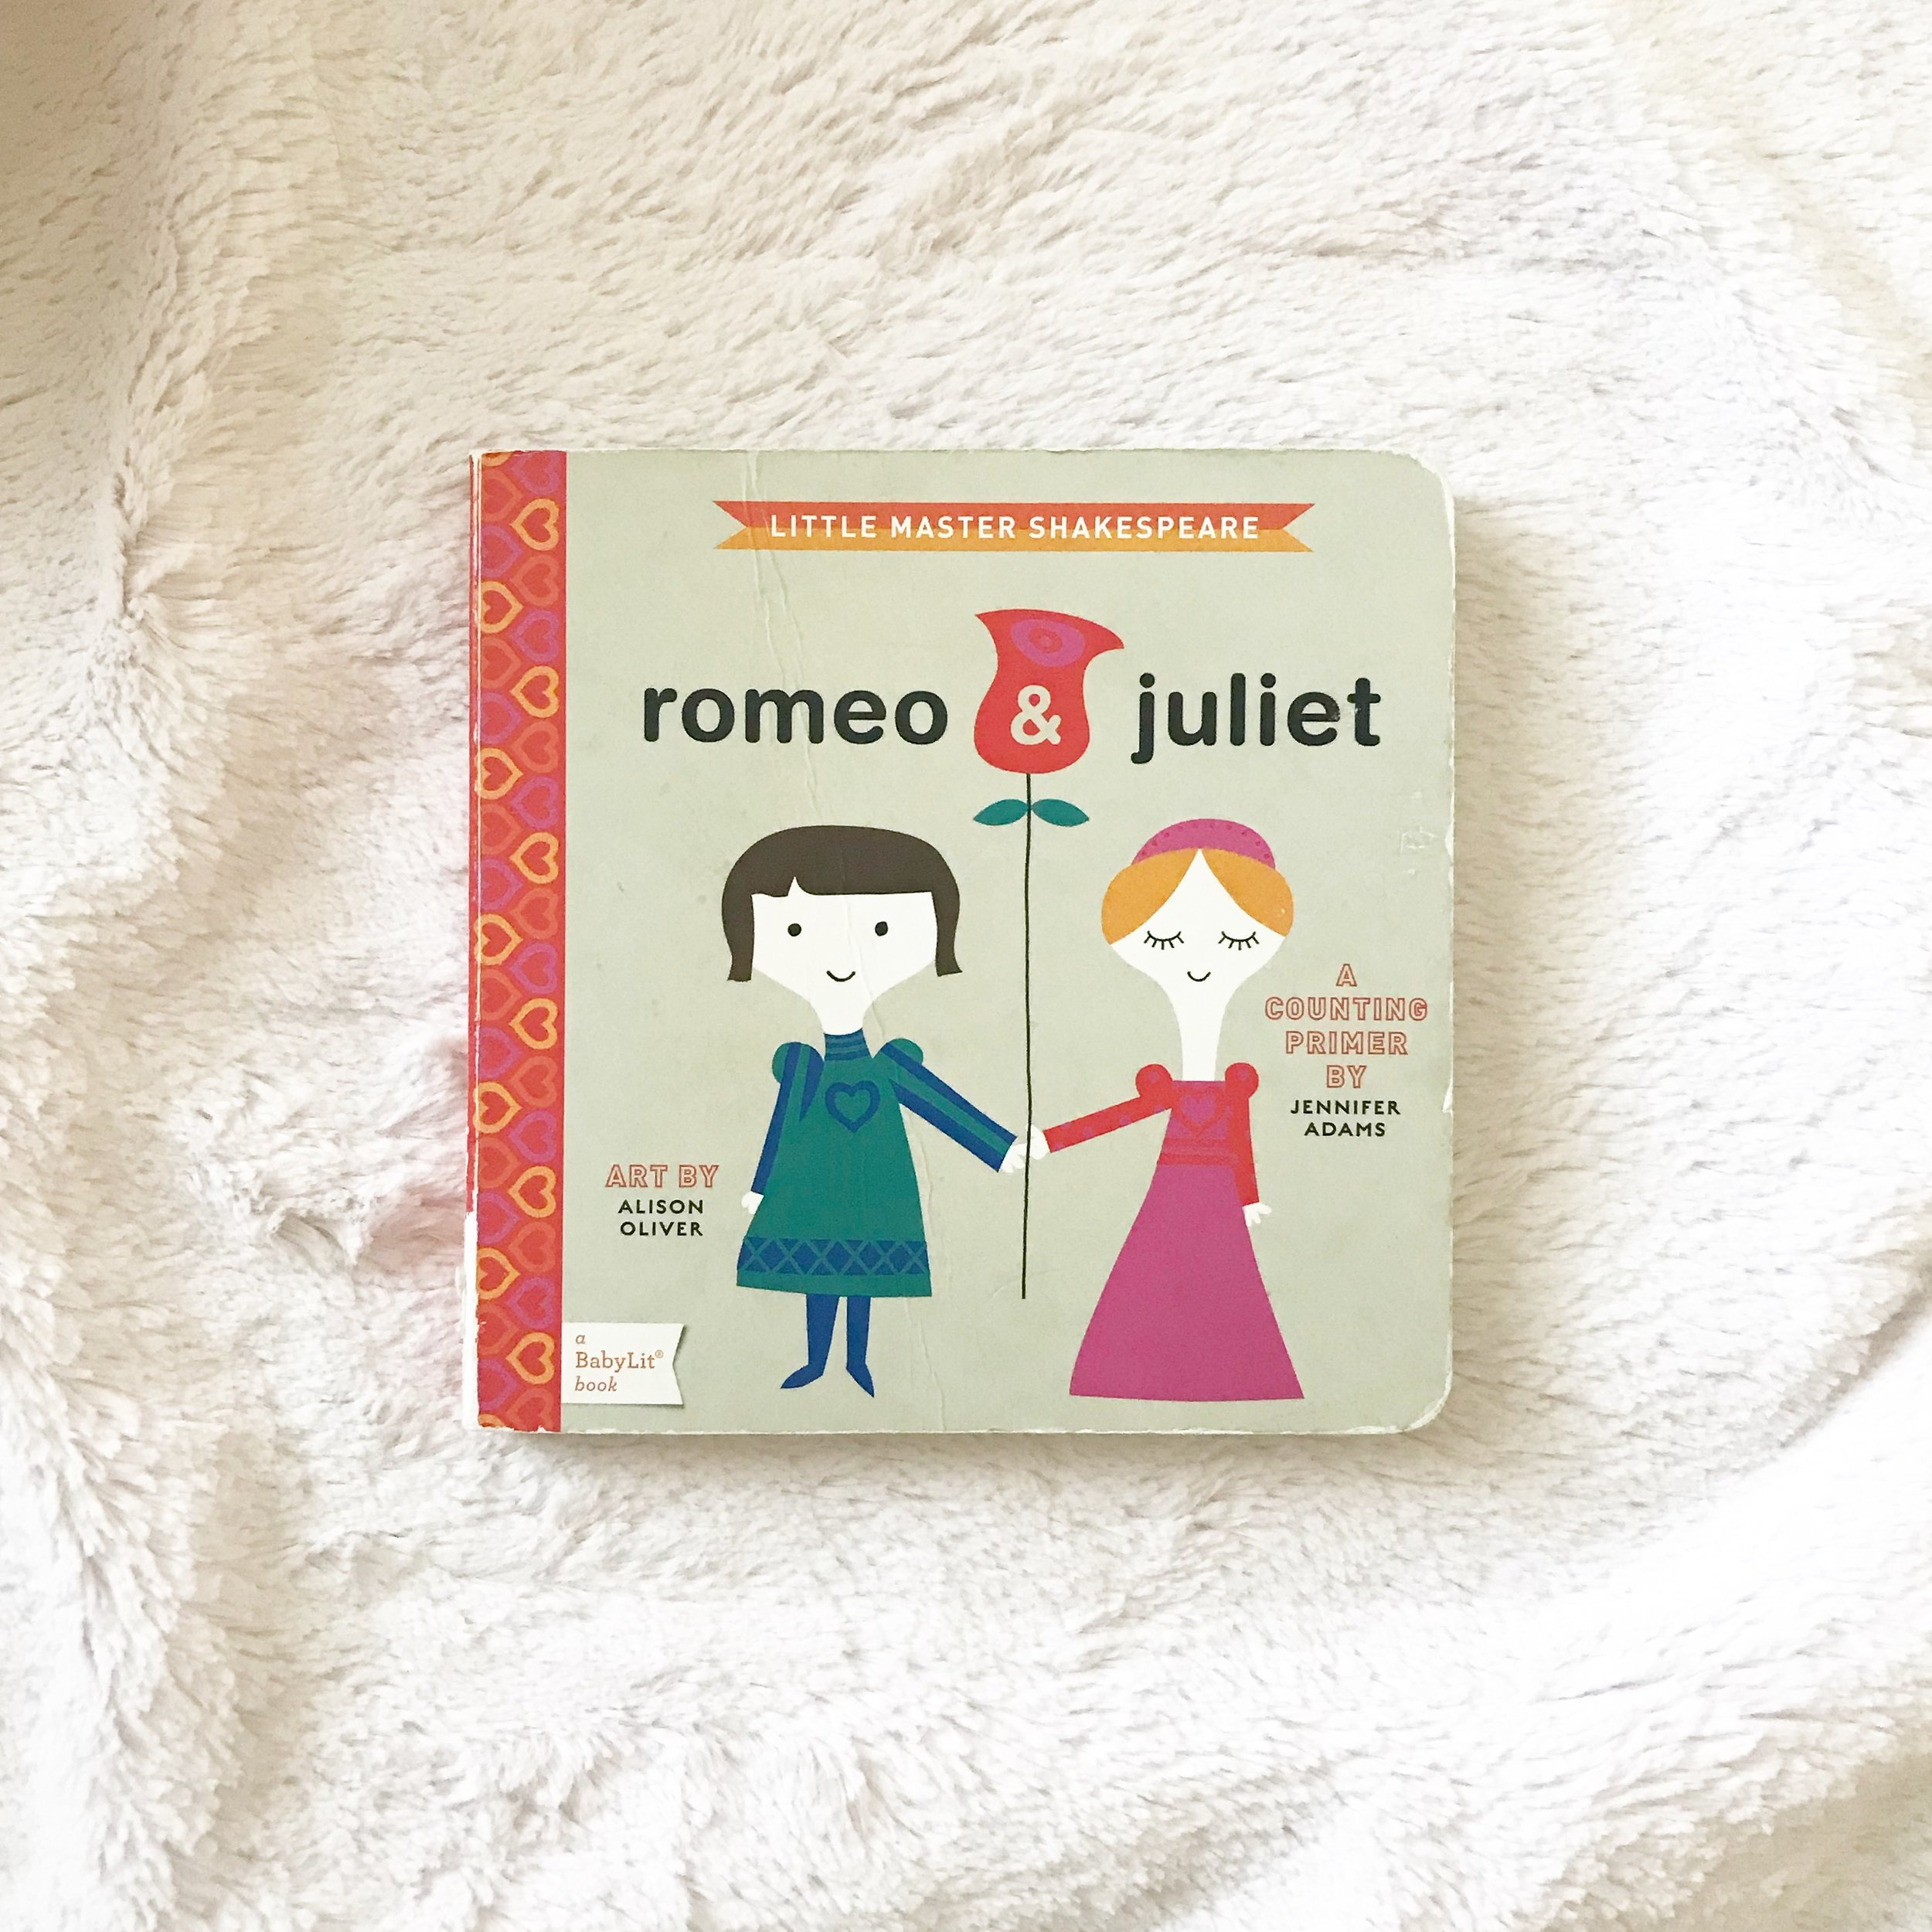 romeo & juliet    Kid friendly twist on a classic.